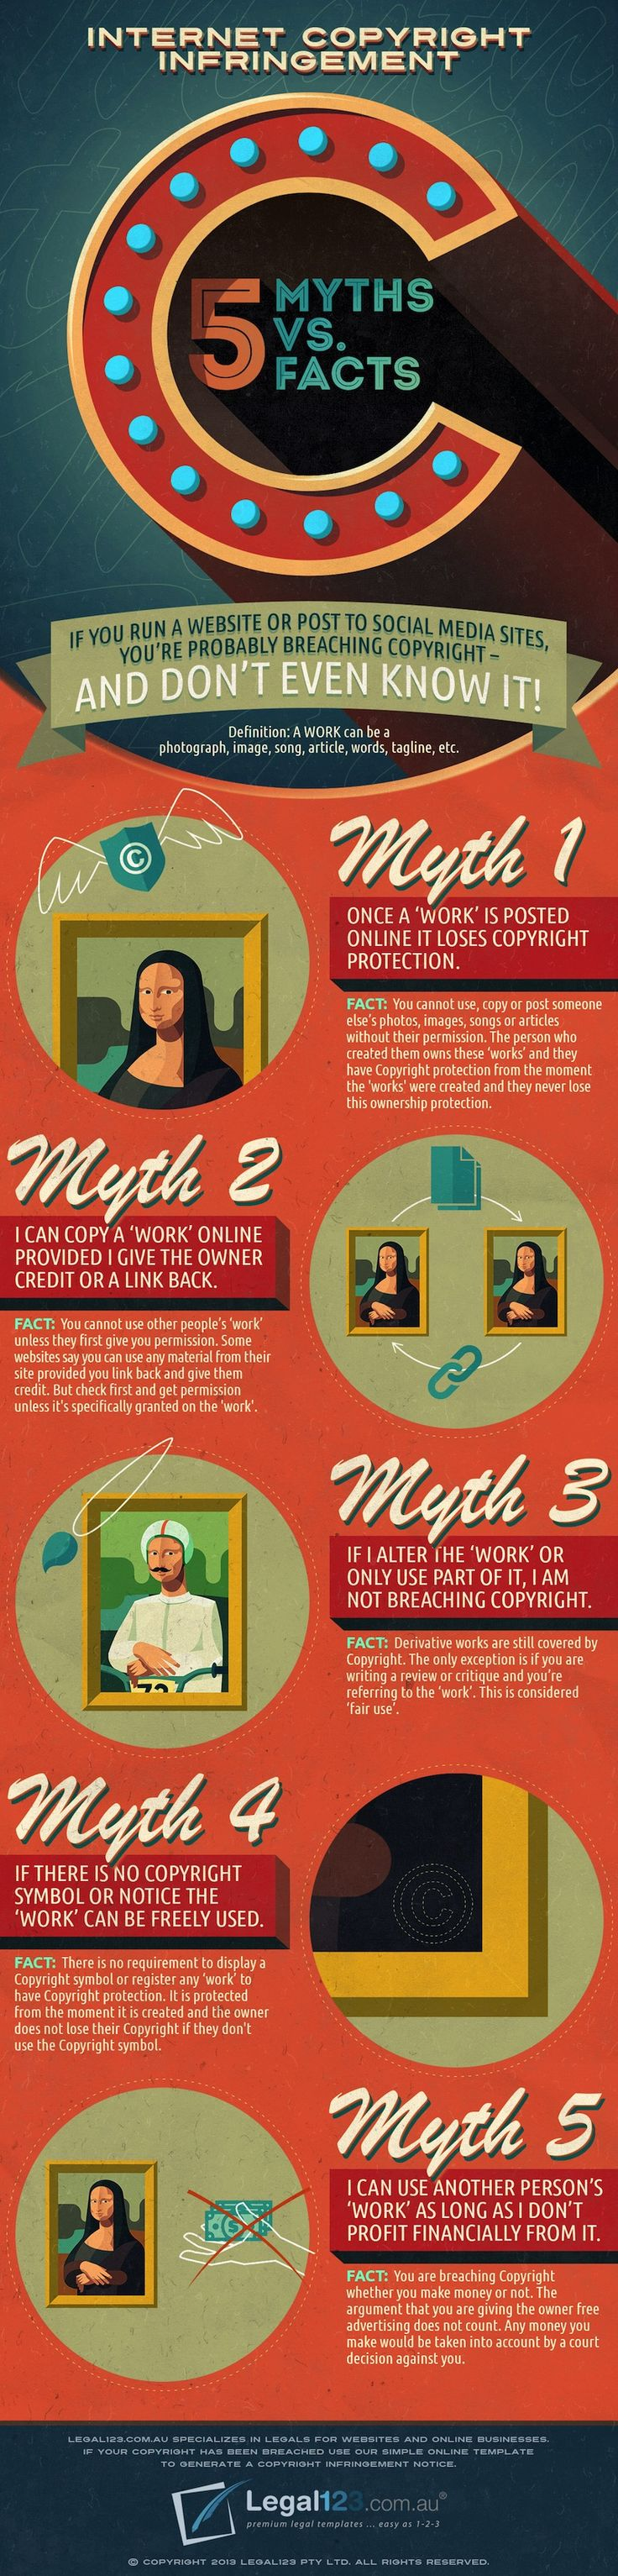 5 myths vs. facts about internet copyright infringement.  http://dustn.tv/sharing-images-responsibly/